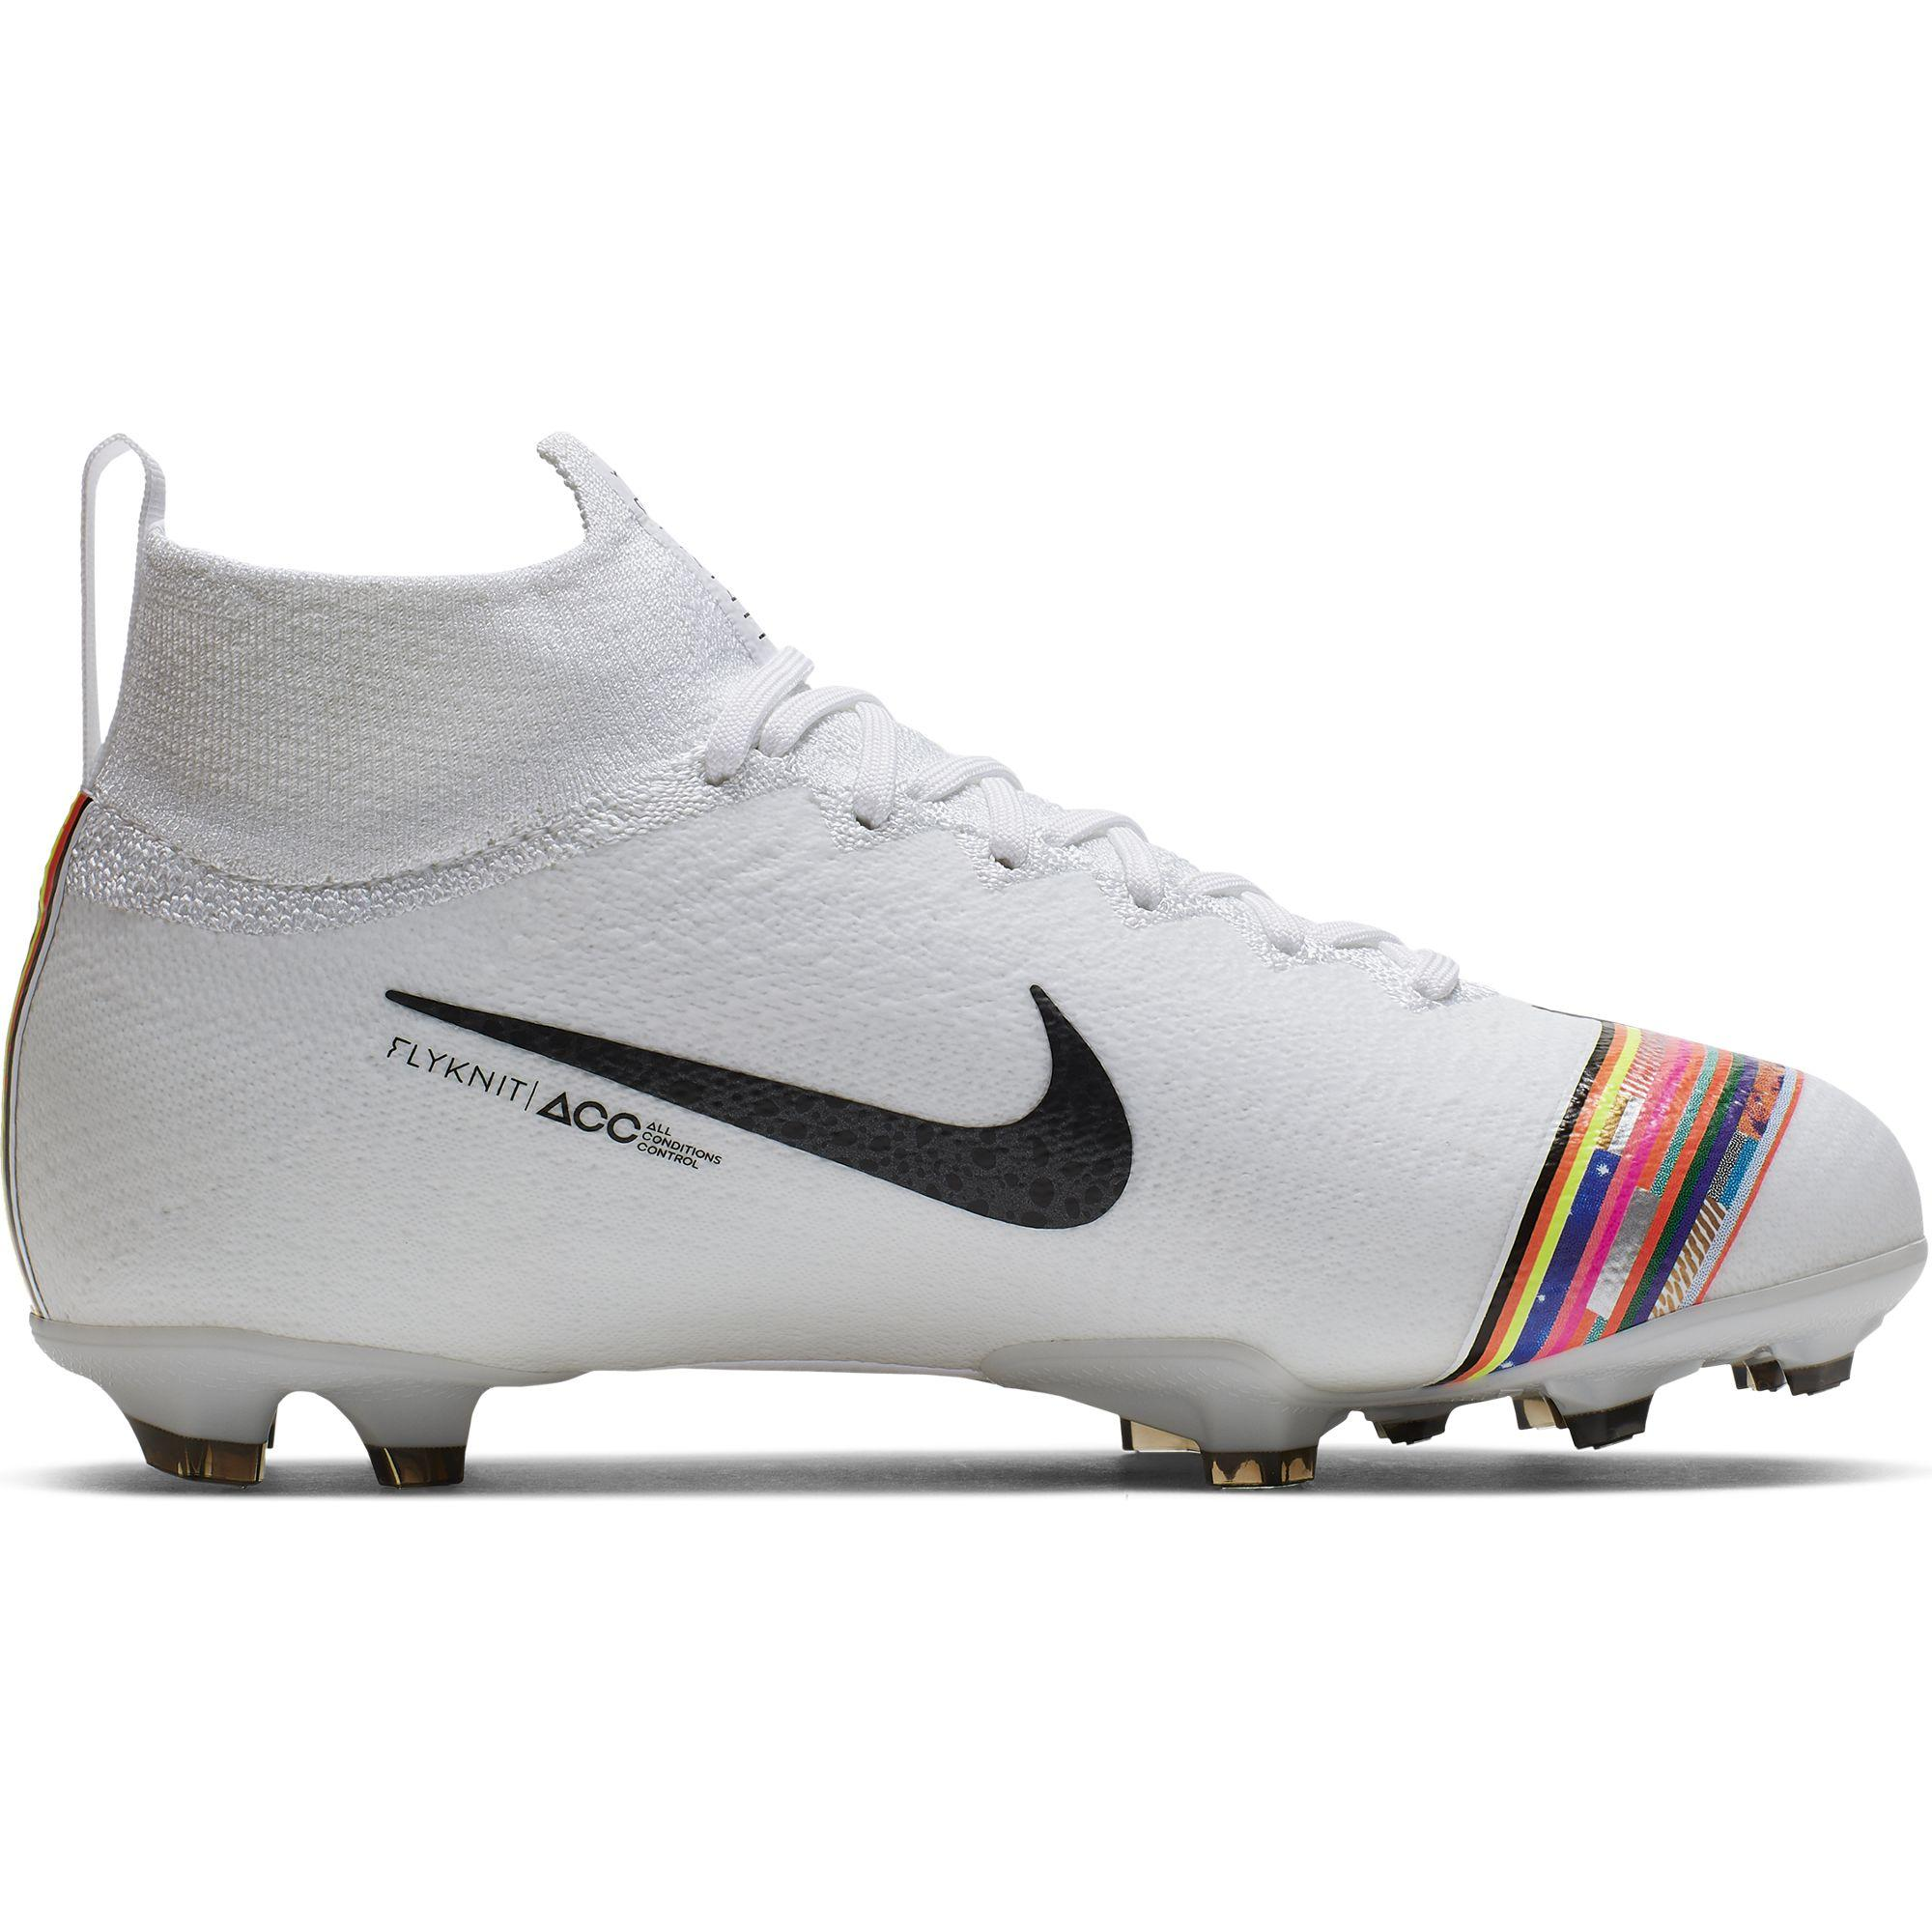 Nike Scarpe Calcio Superfly 6 Elite Cr7 Fg  Junior Cristiano Ronaldo